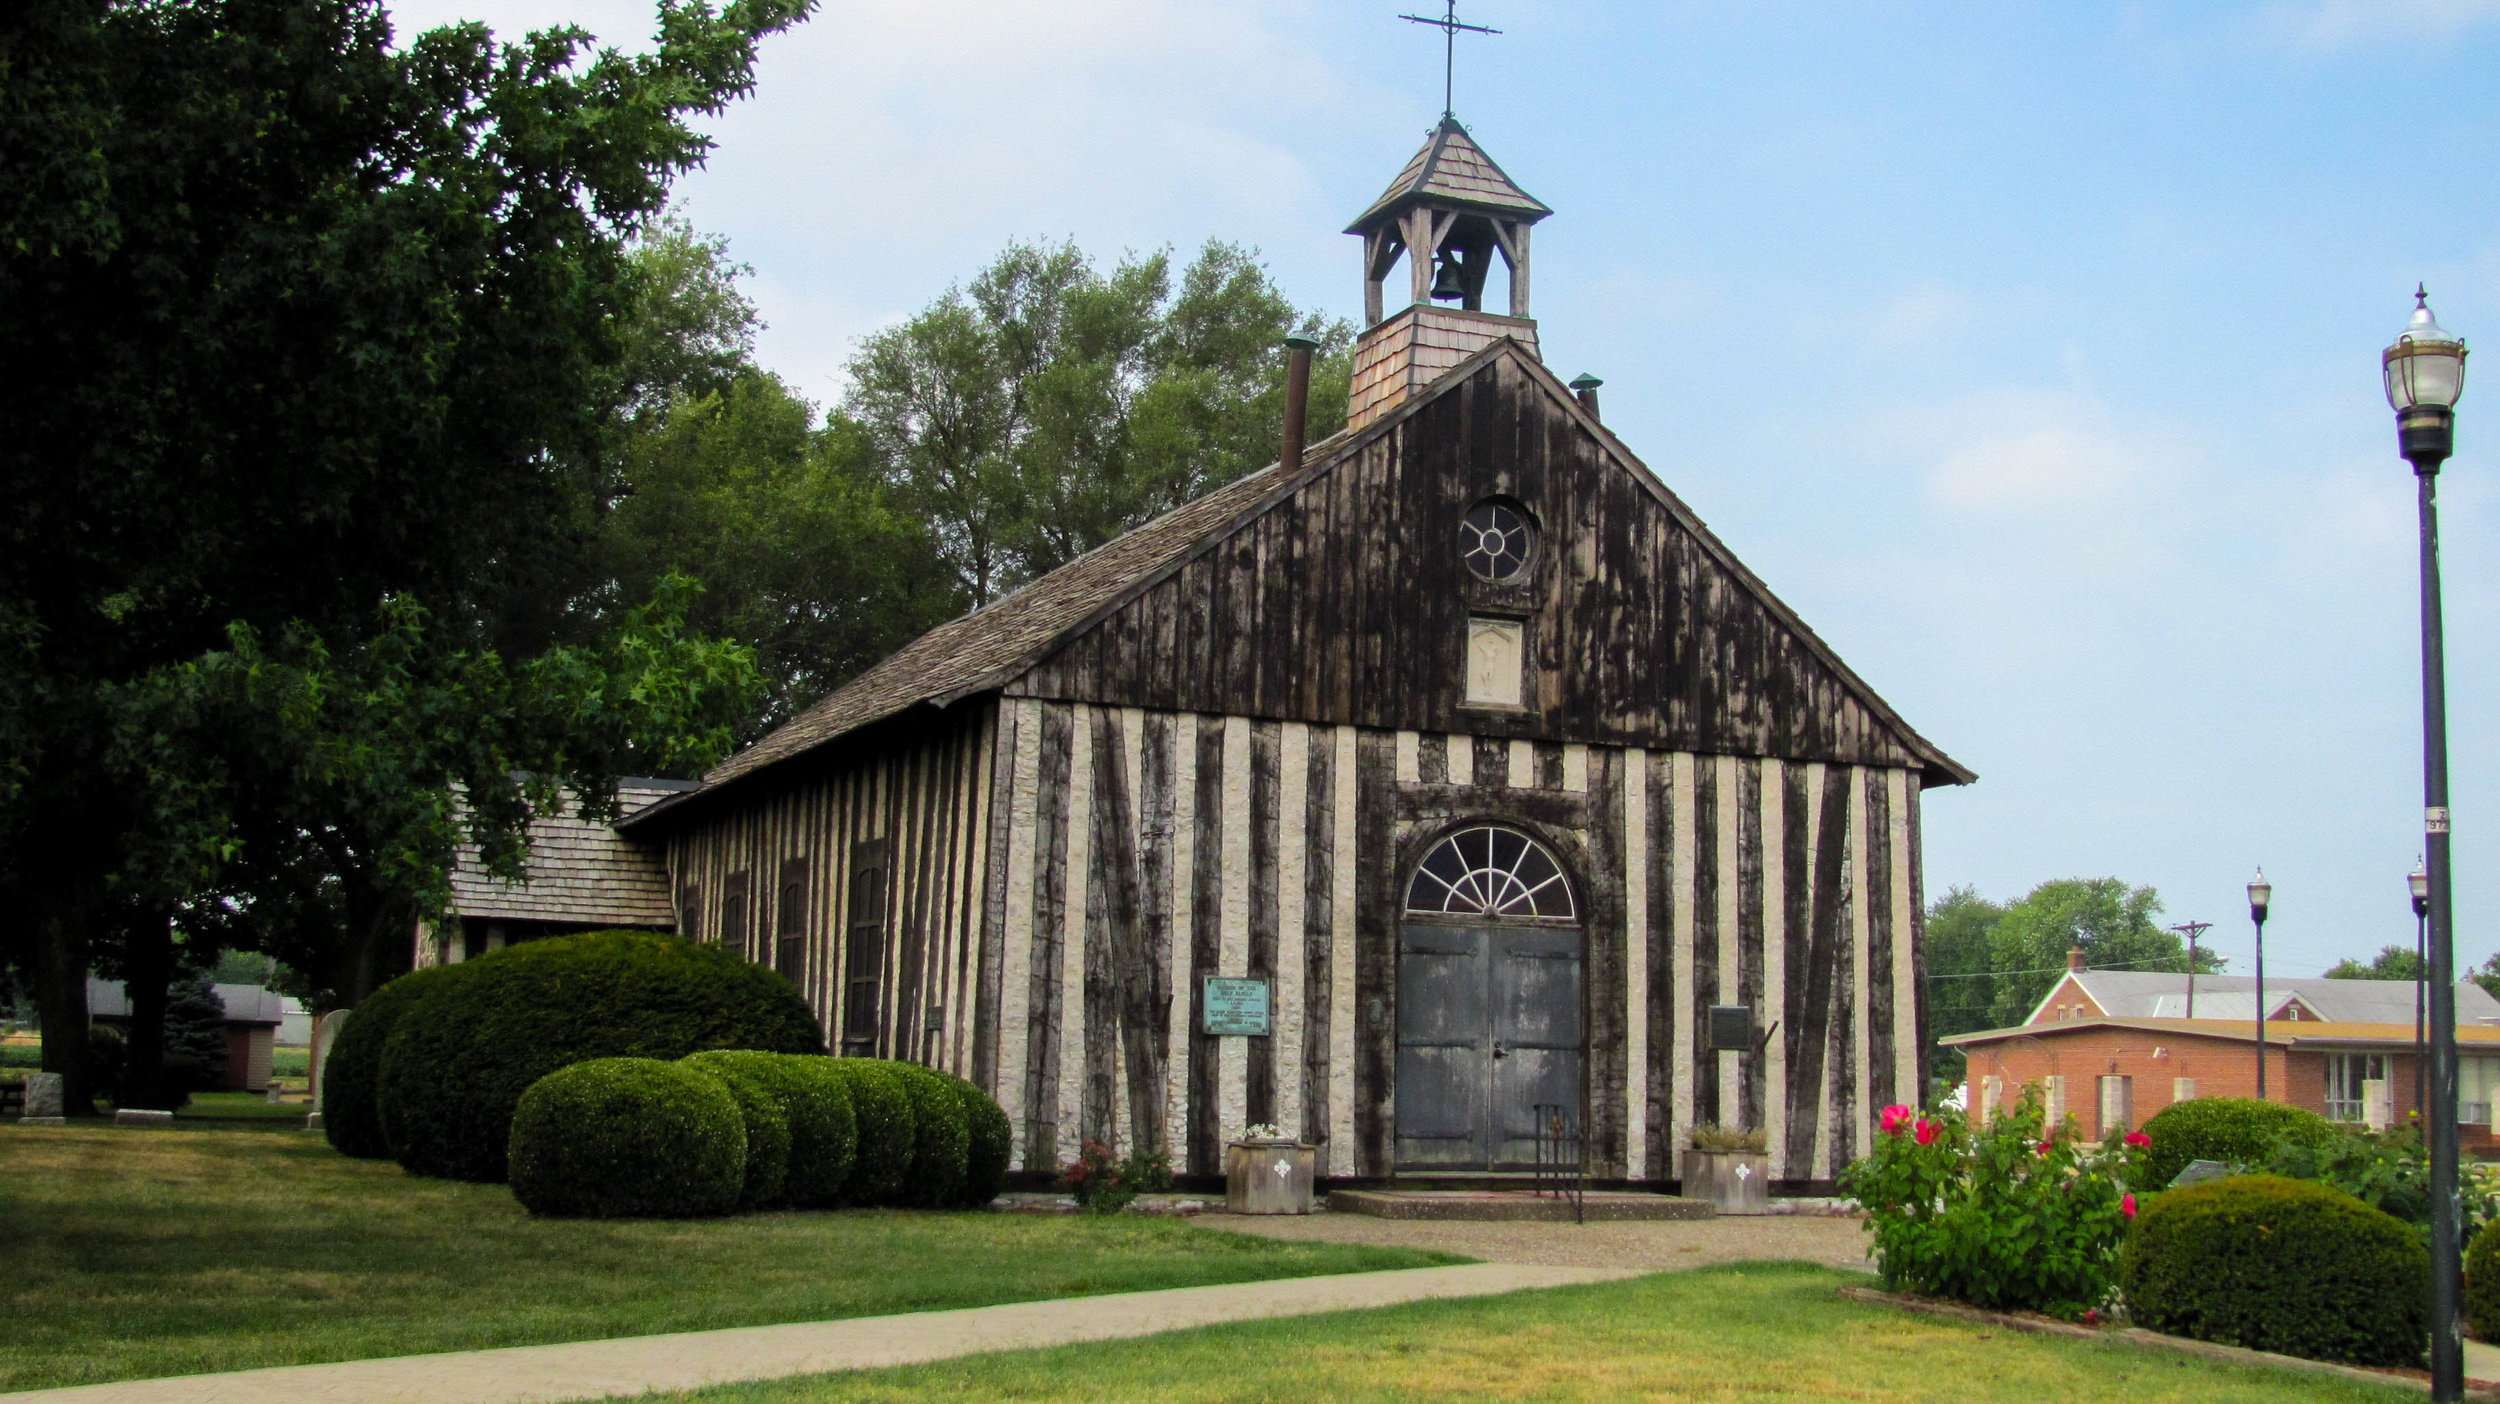 The Holy Family Log Church in Cahokia